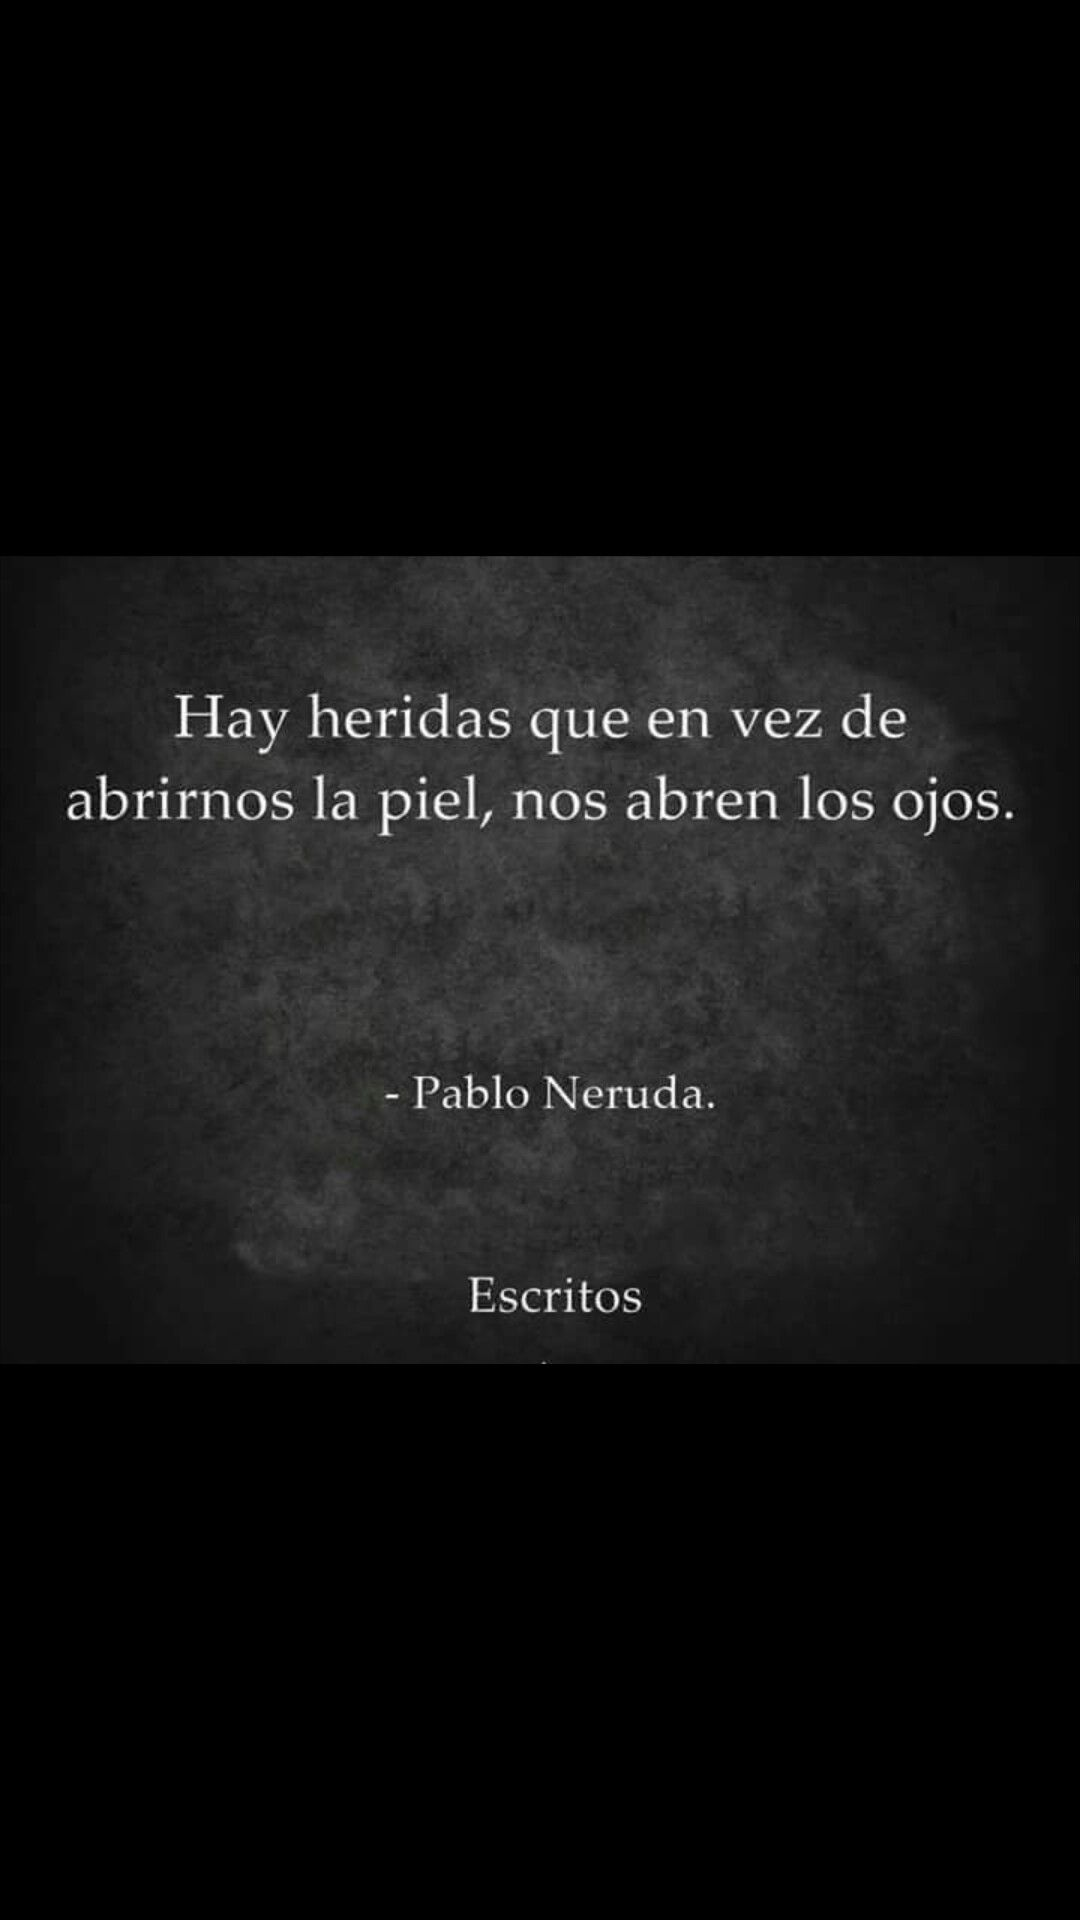 Famous Phrases About Life Pinmina 😉 On Frases  Pinterest  Pablo Neruda Frases And